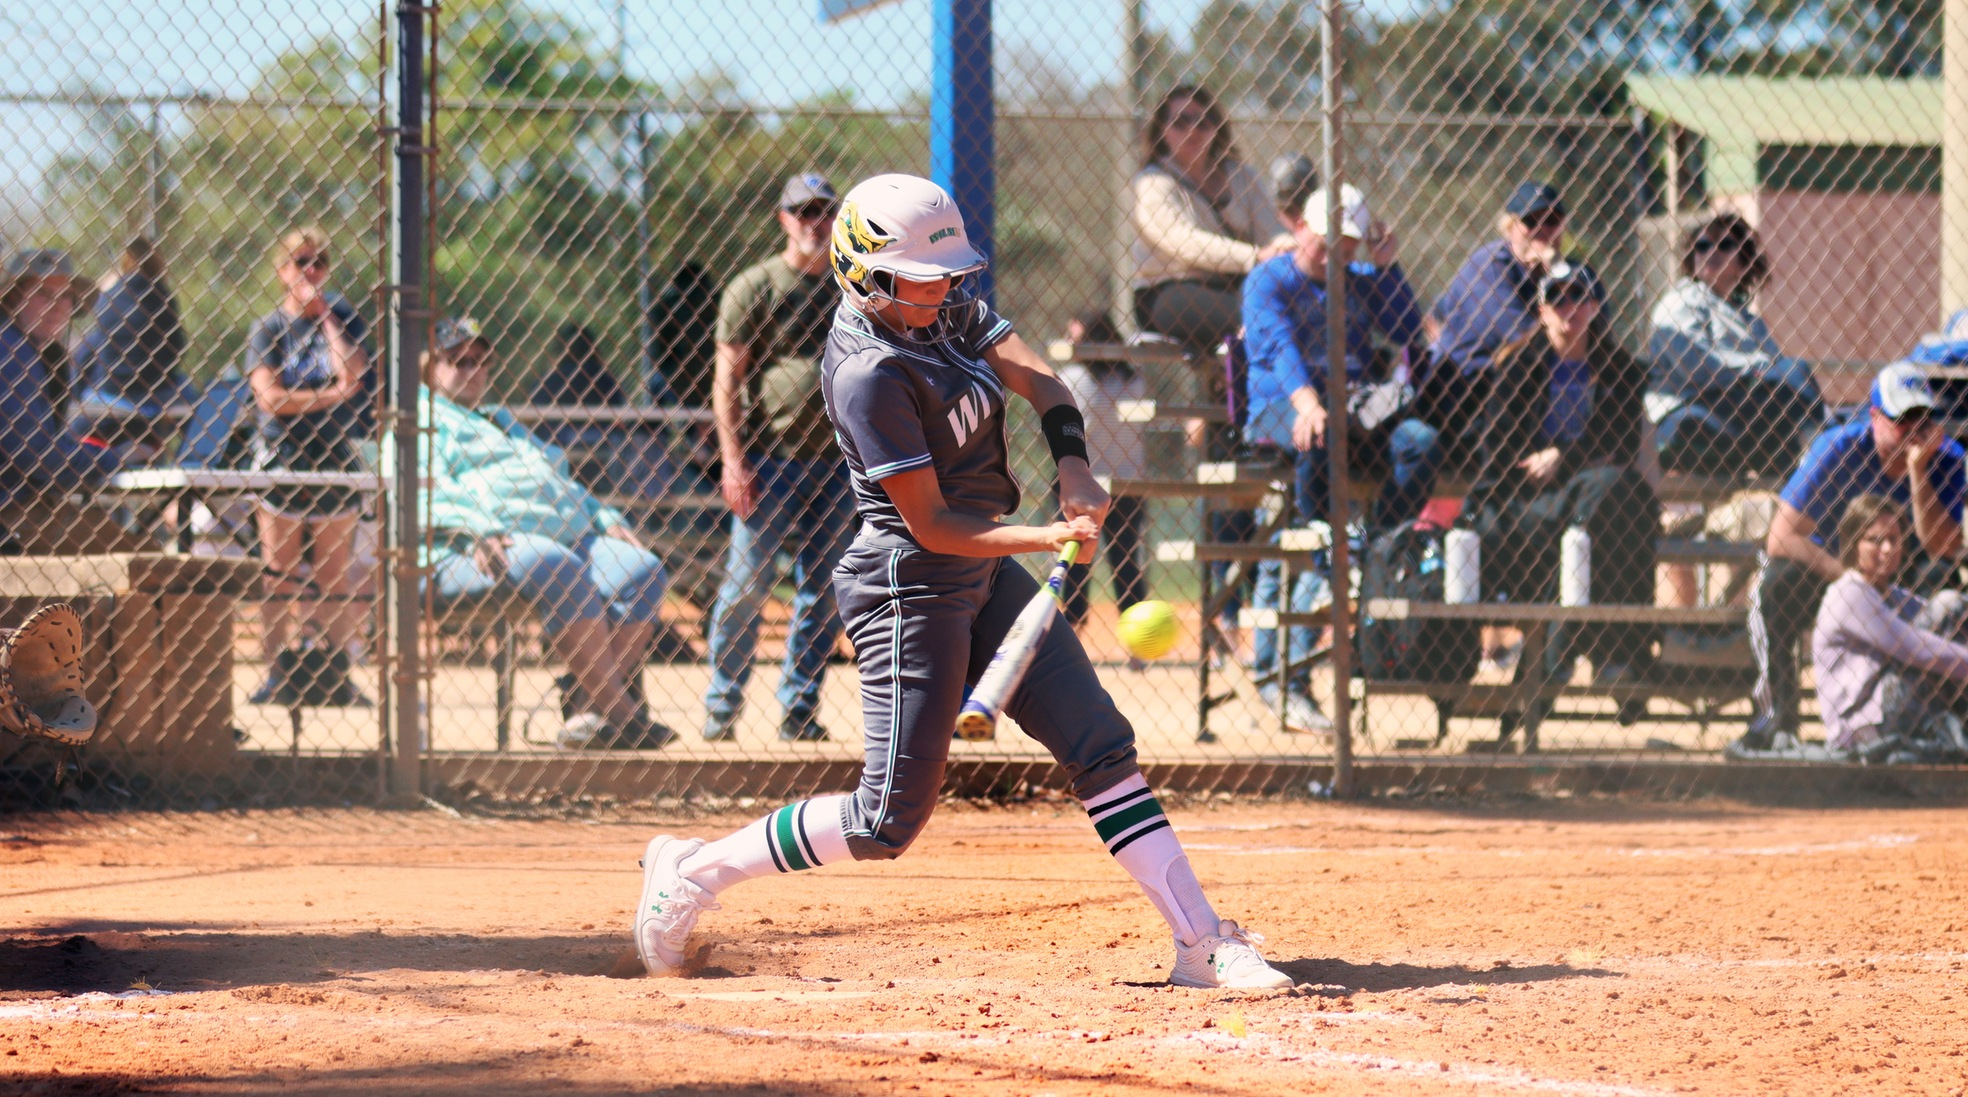 Copyright 2020. Wilmington University. All rights reserved. Photo by Mary Kate Rumbaugh. March 1, 2020 vs. Grand Valley State at Winter Haven Diamond Plex in Winter Haven, Florida. Photo of Sara Miller, who had four hits combined against Western Oregon and GVS.